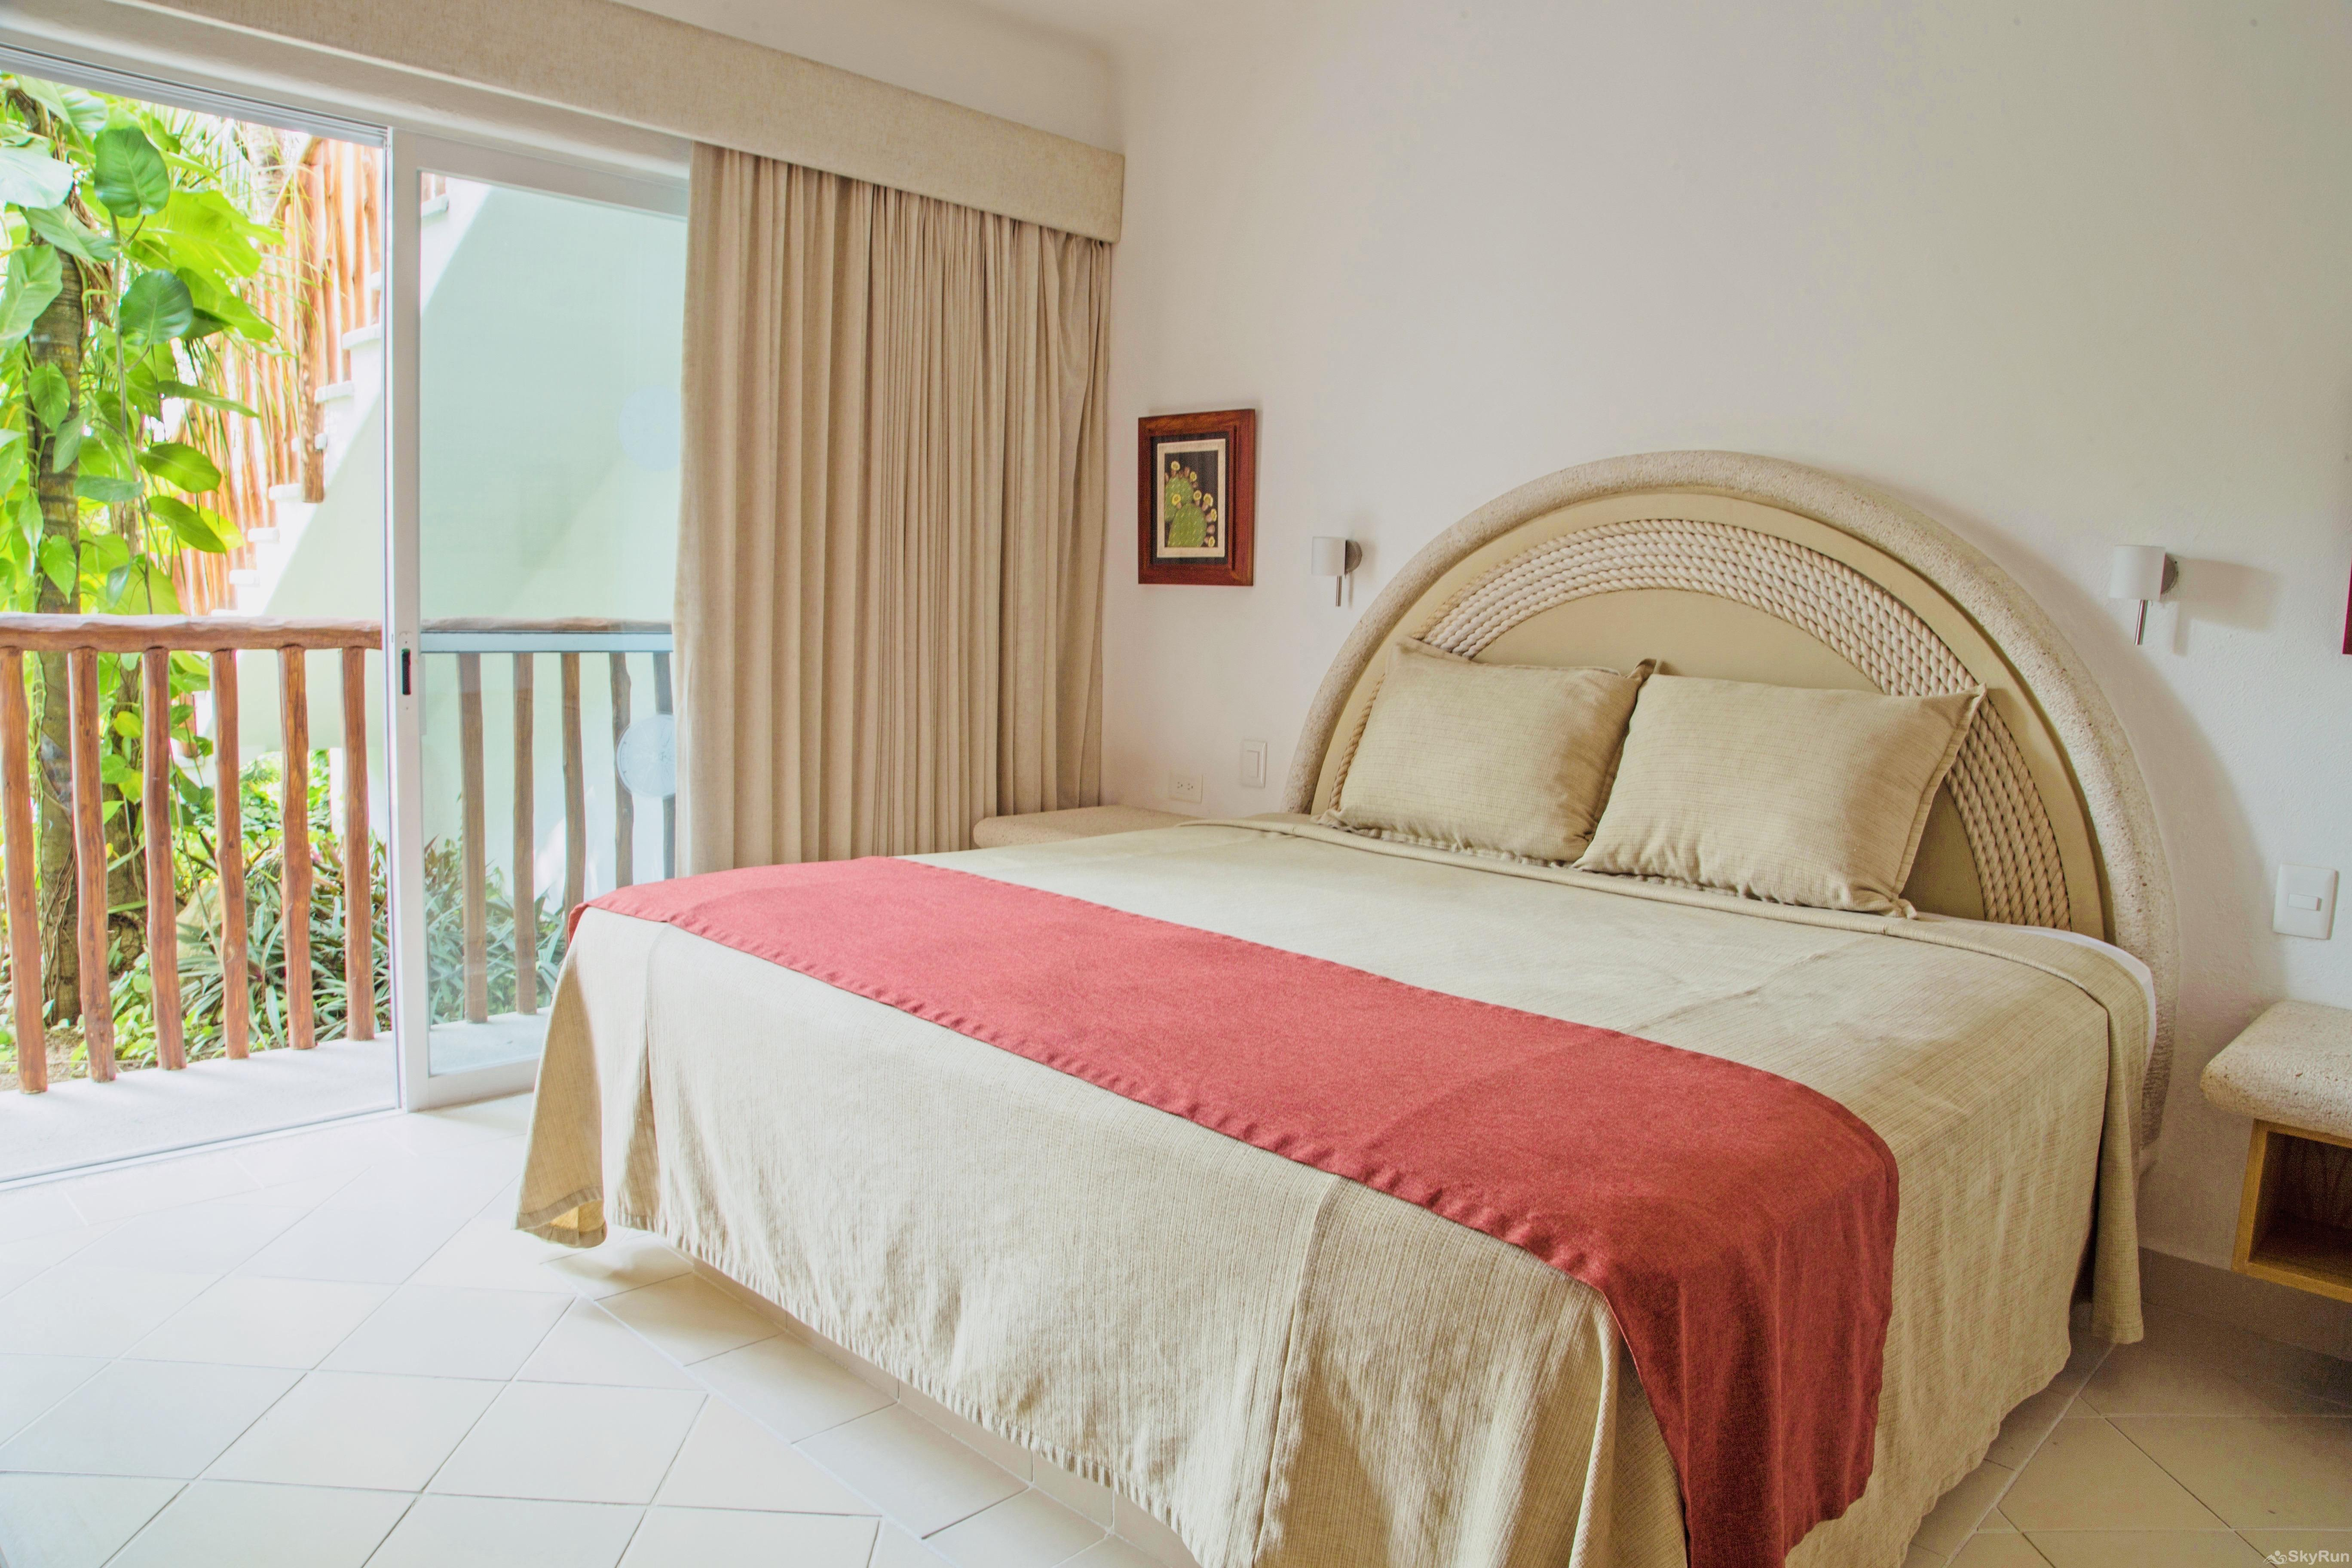 Beachfront Luxury Villa Outdoor Pool 206 3 Bedroom 2nd floor Master Queen Bedroom